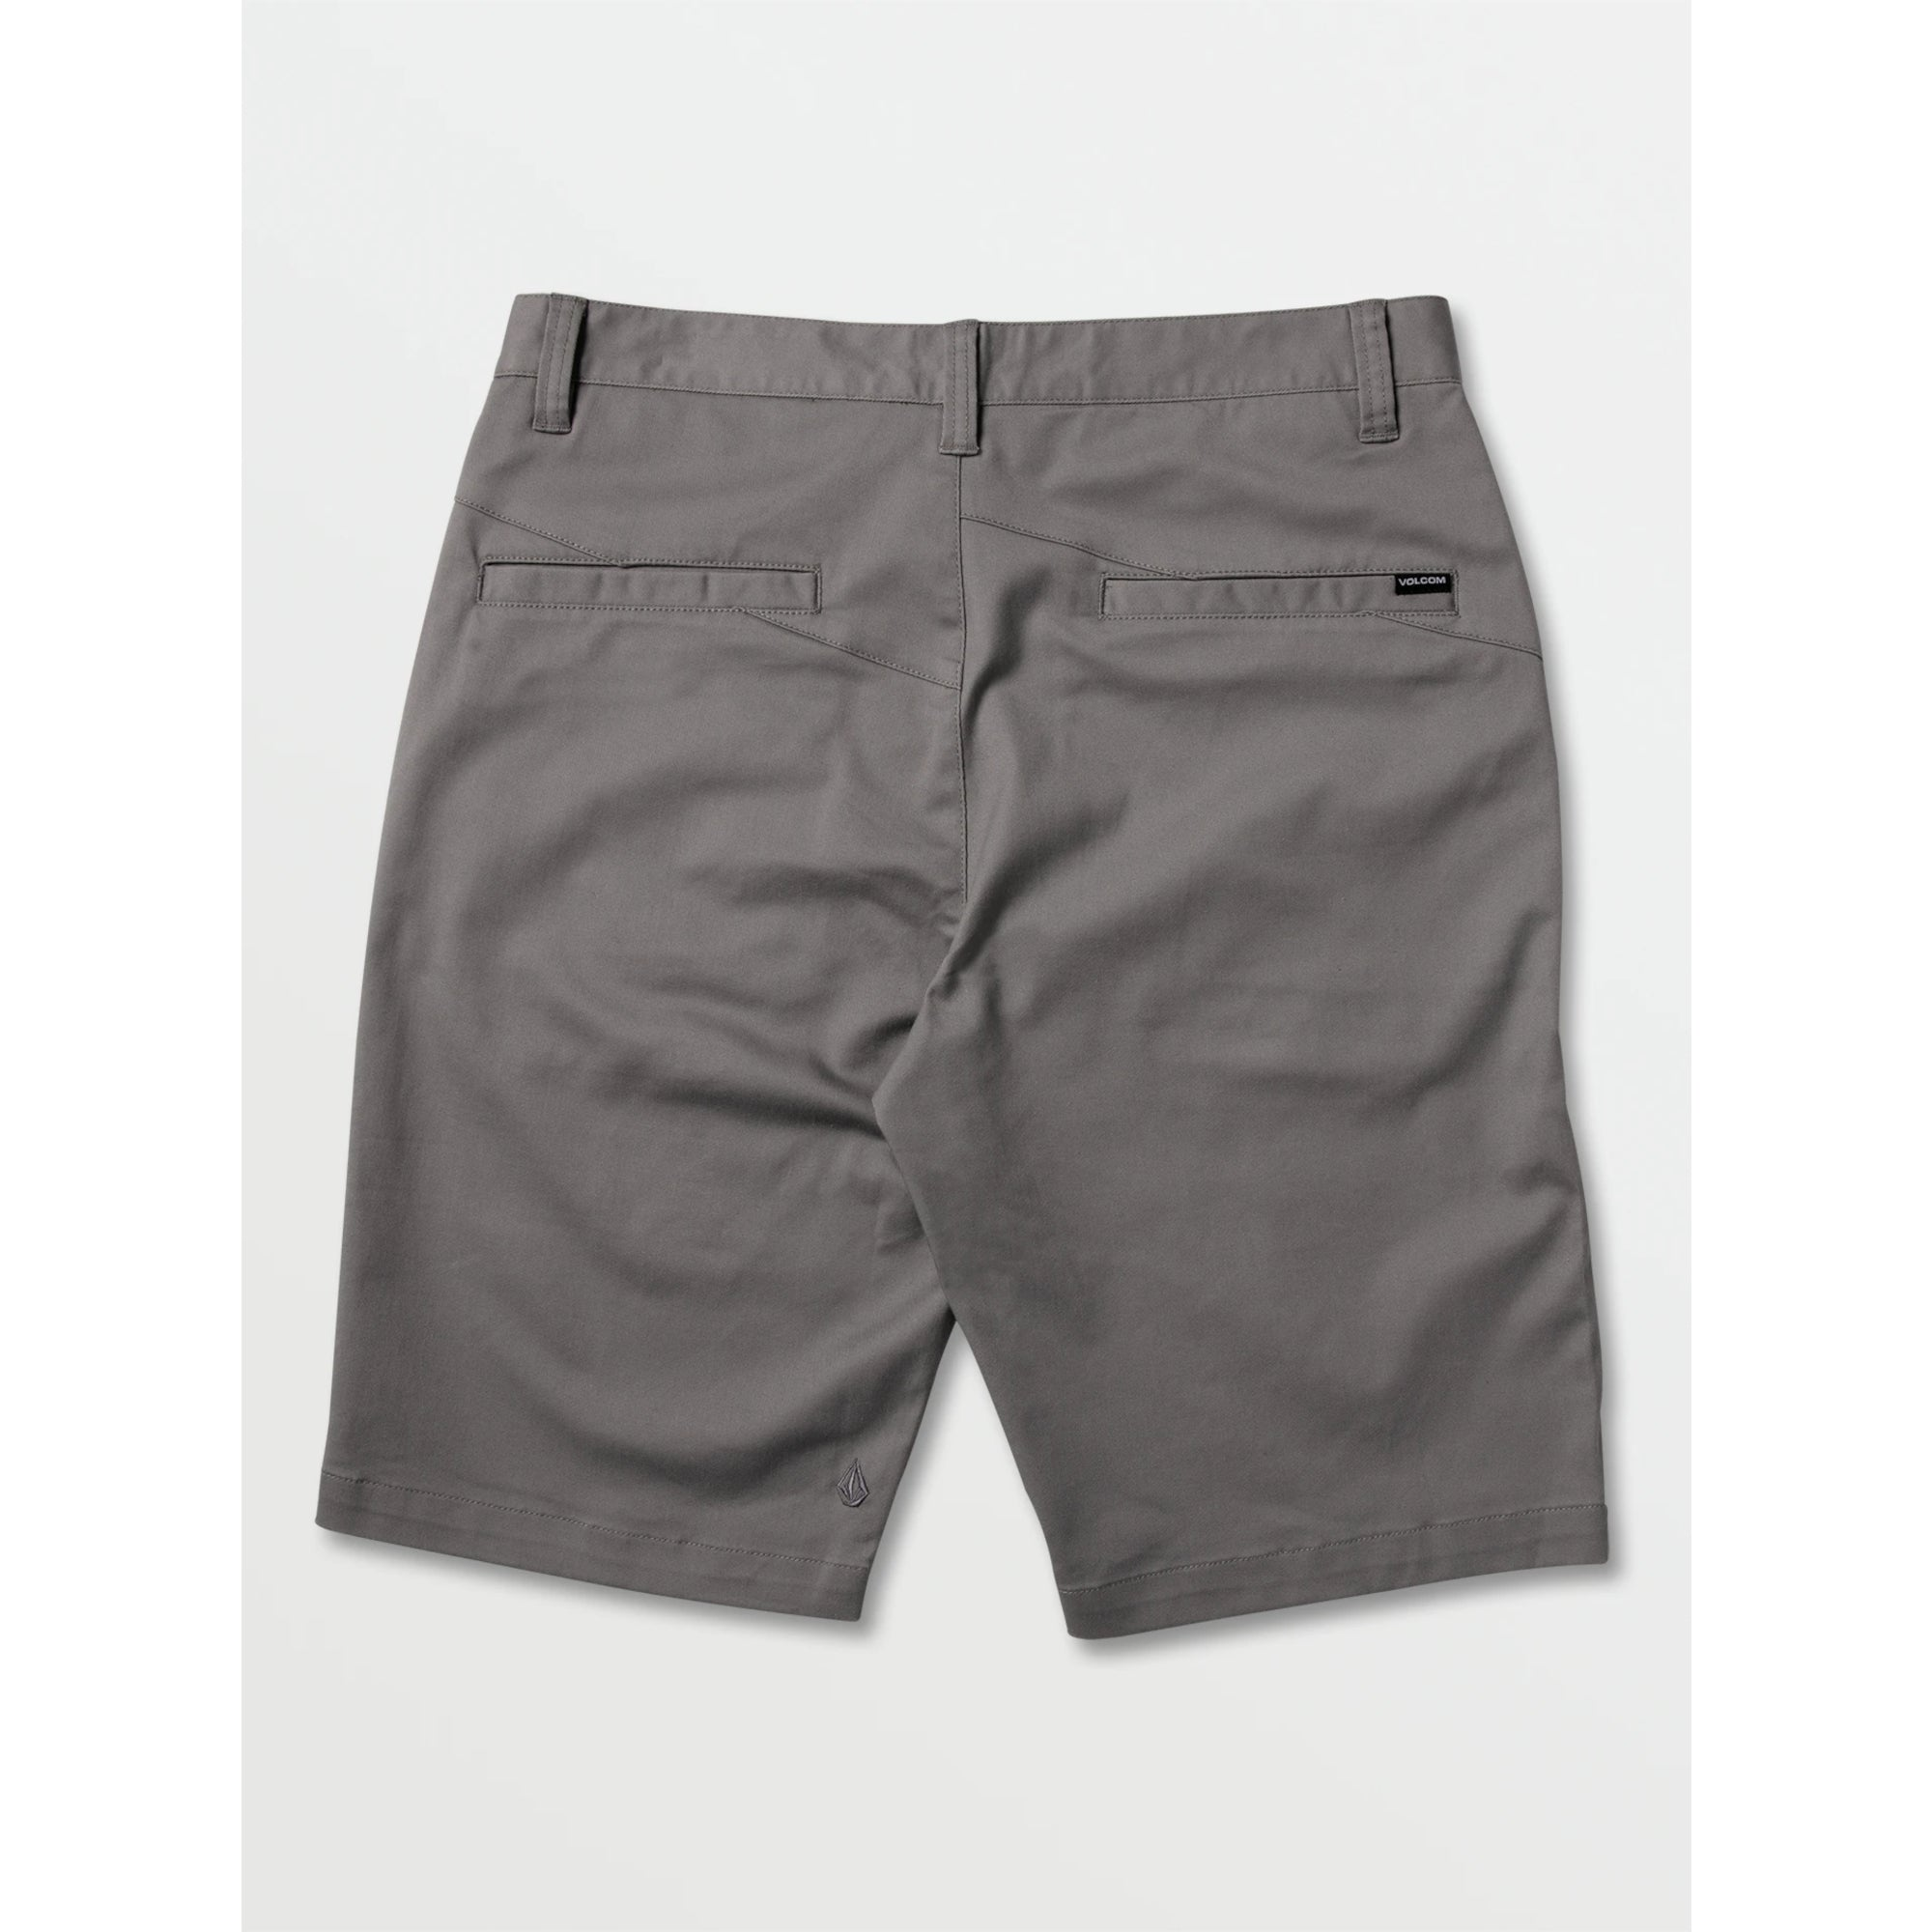 Volcom Vmonty Stretch Shorts